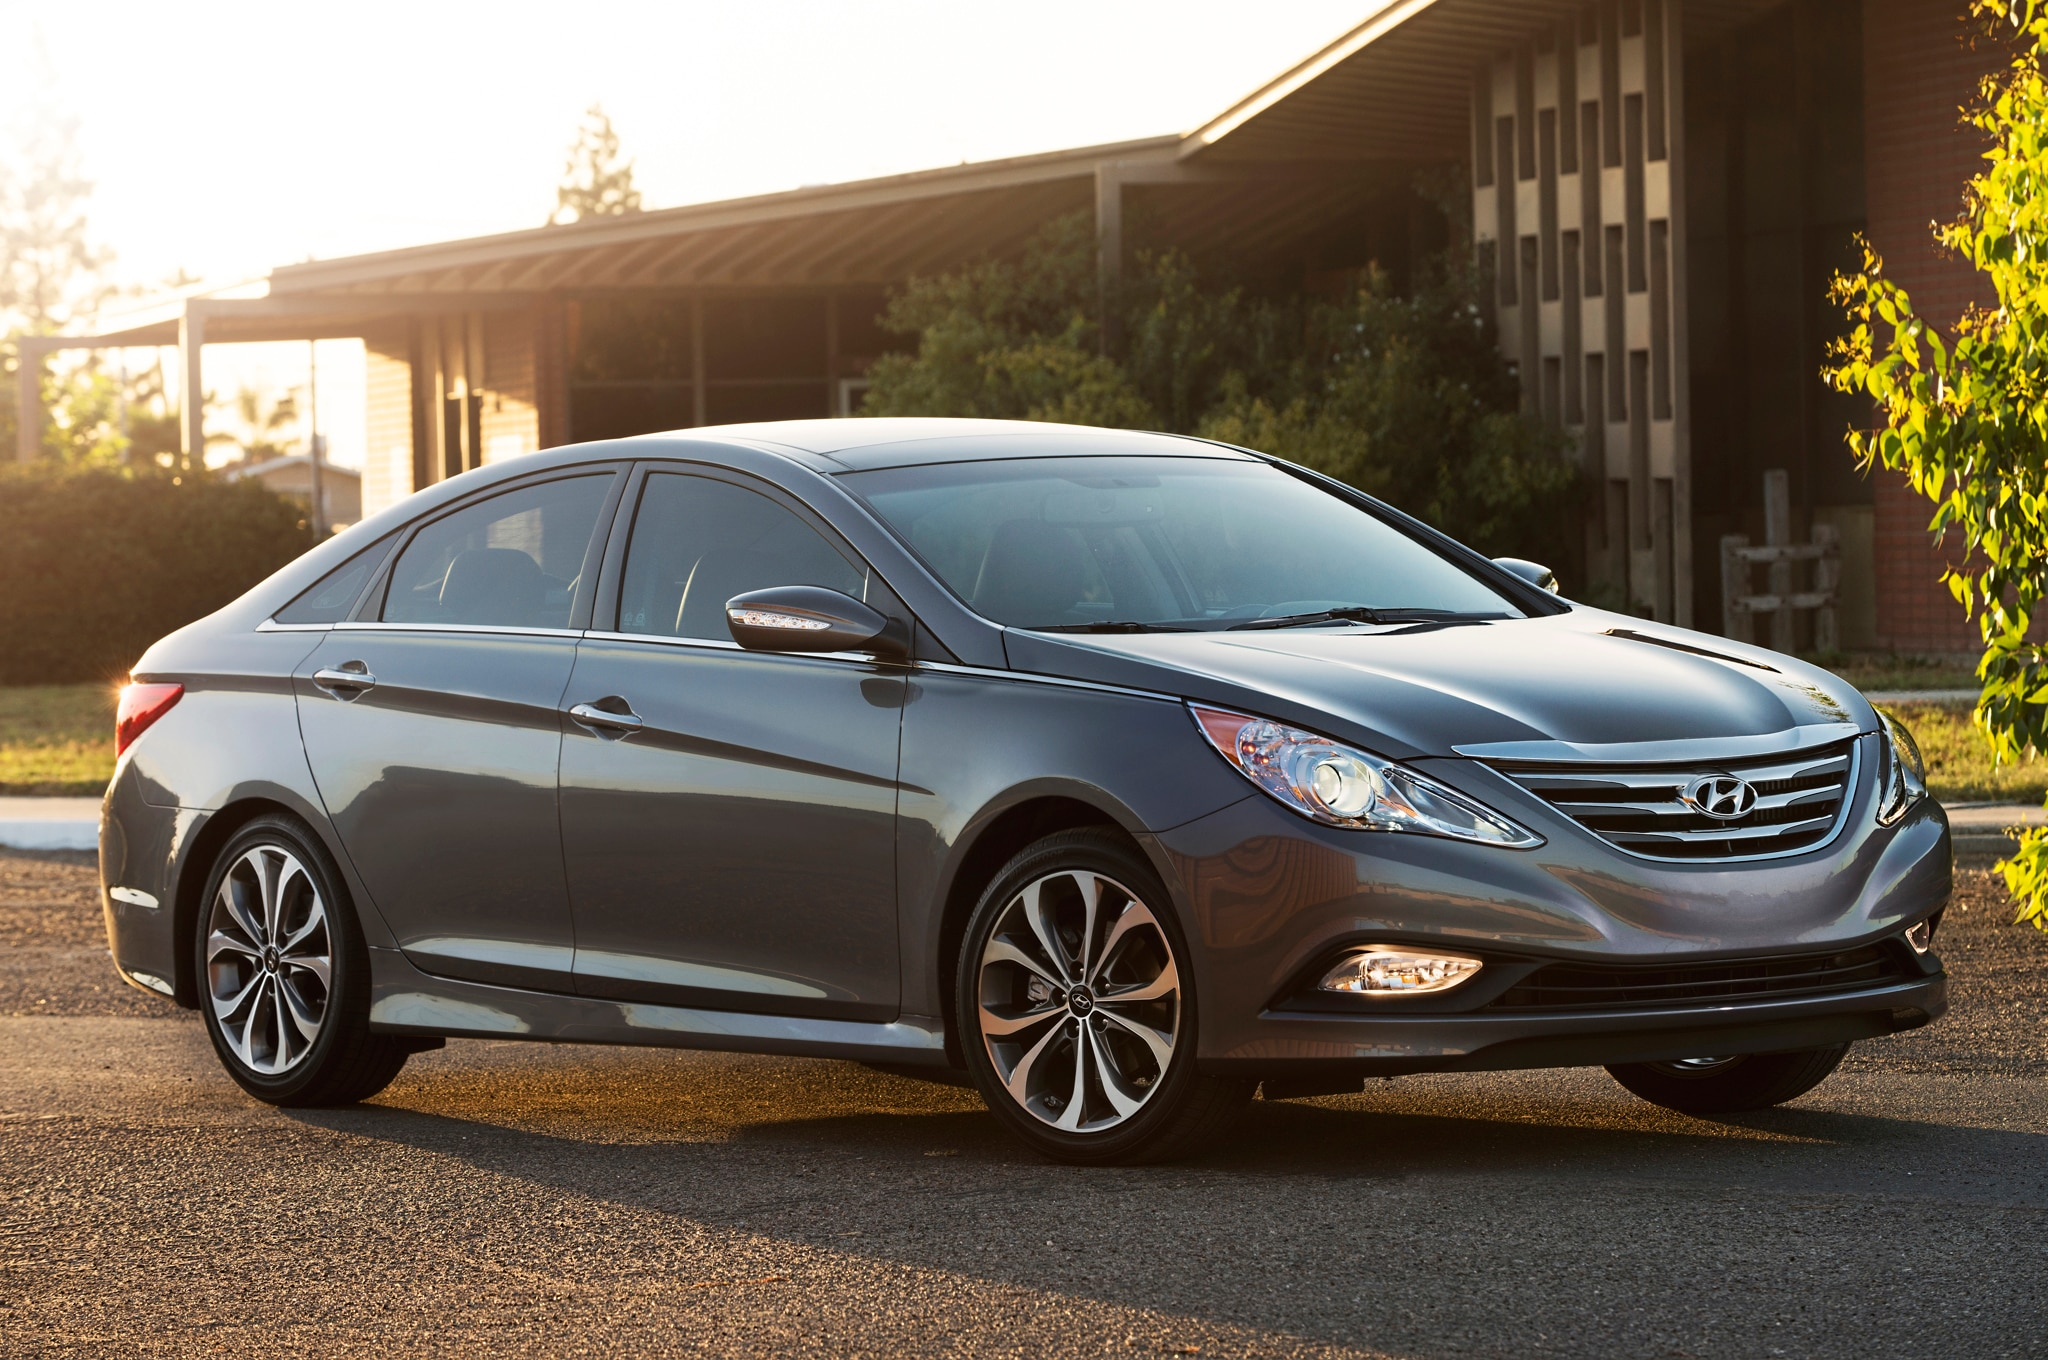 2014 Hyundai Sonata Front Three Quarters 21